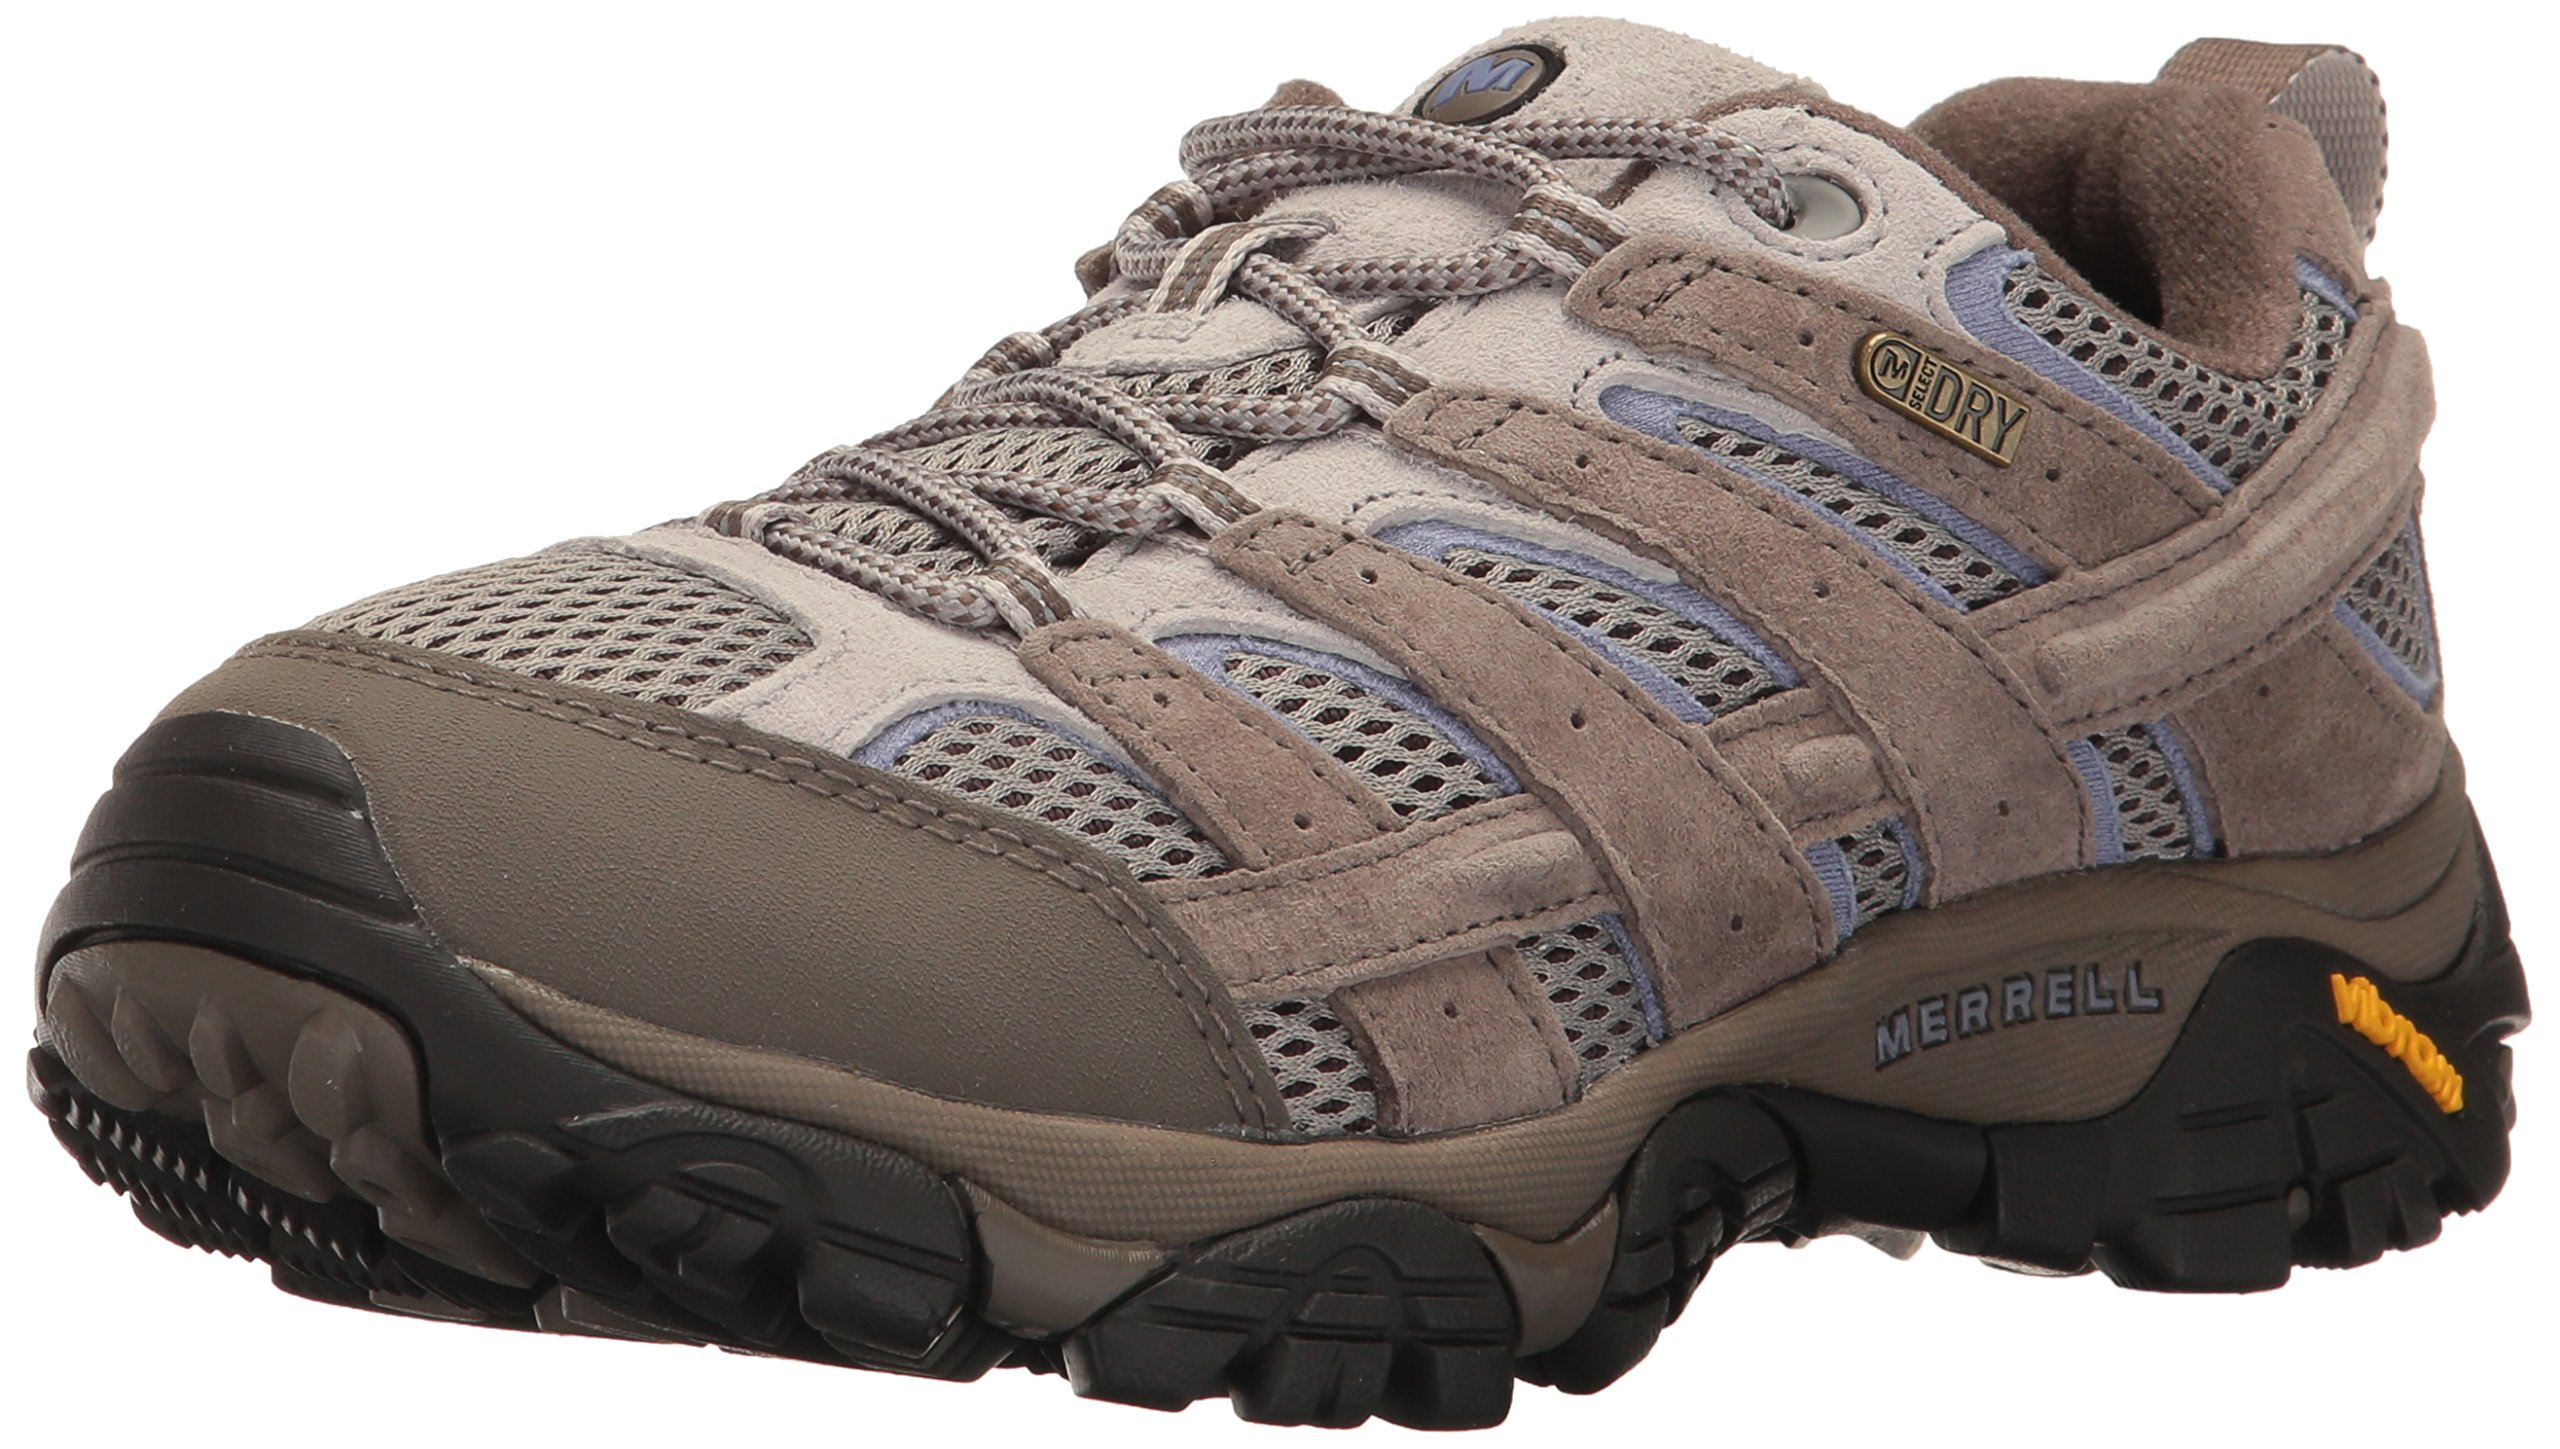 Merrell Women's Moab 2 Waterproof Hiking Shoe, Falcon, 7.5 M US